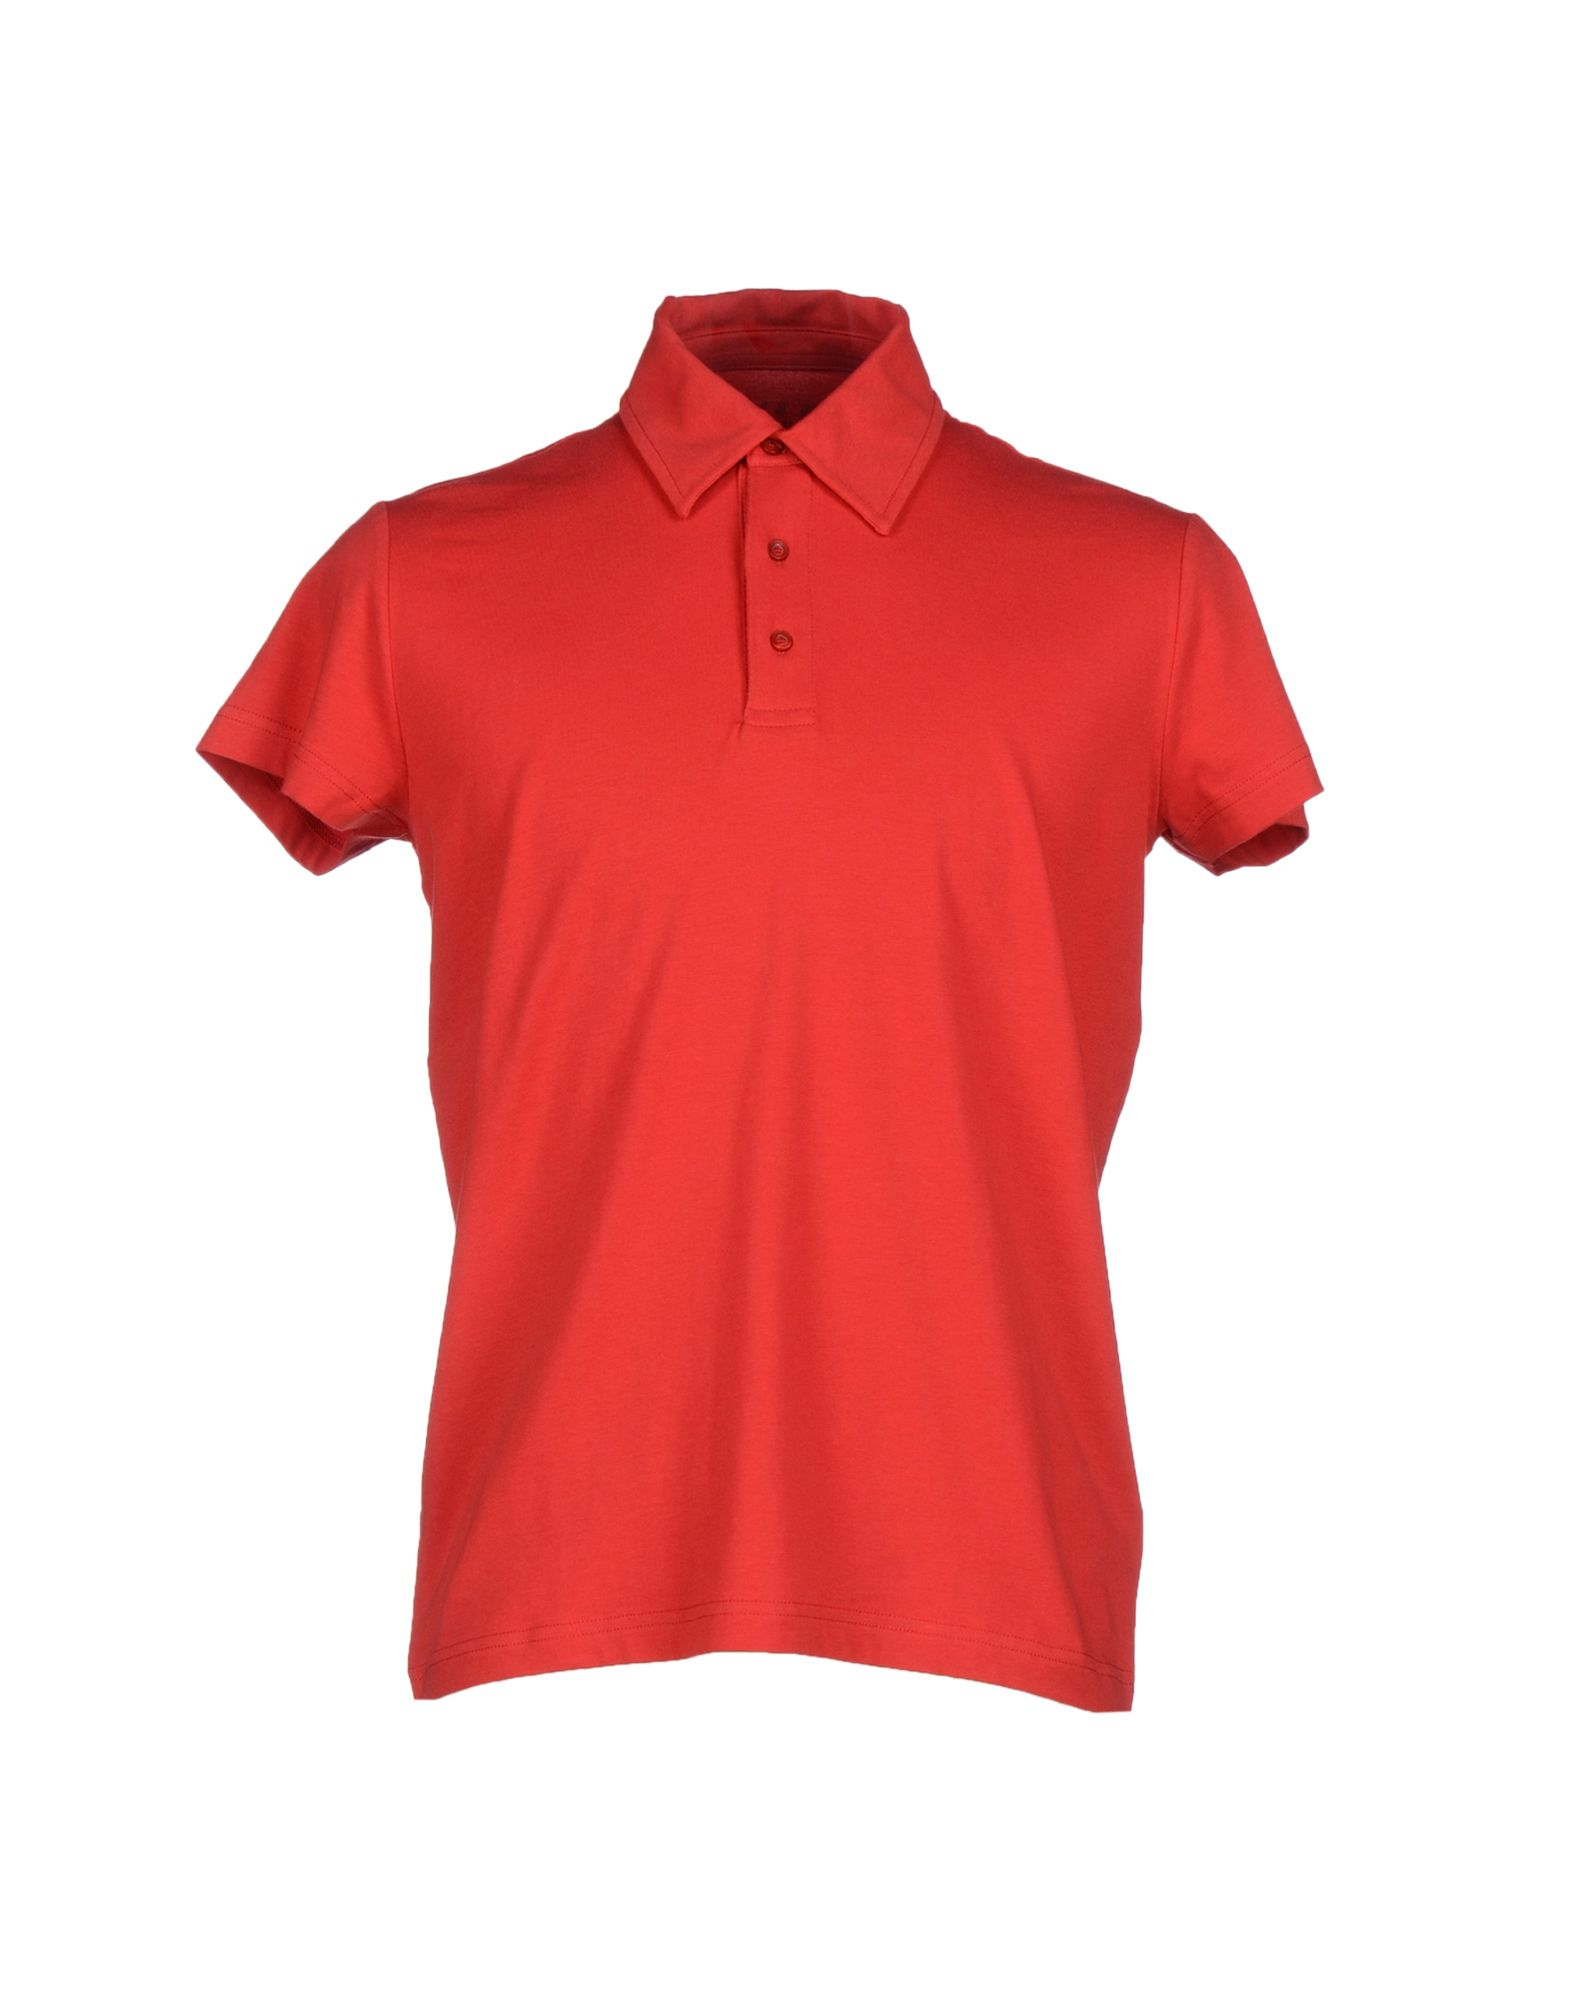 calvin klein jeans polo shirt in red for men lyst. Black Bedroom Furniture Sets. Home Design Ideas